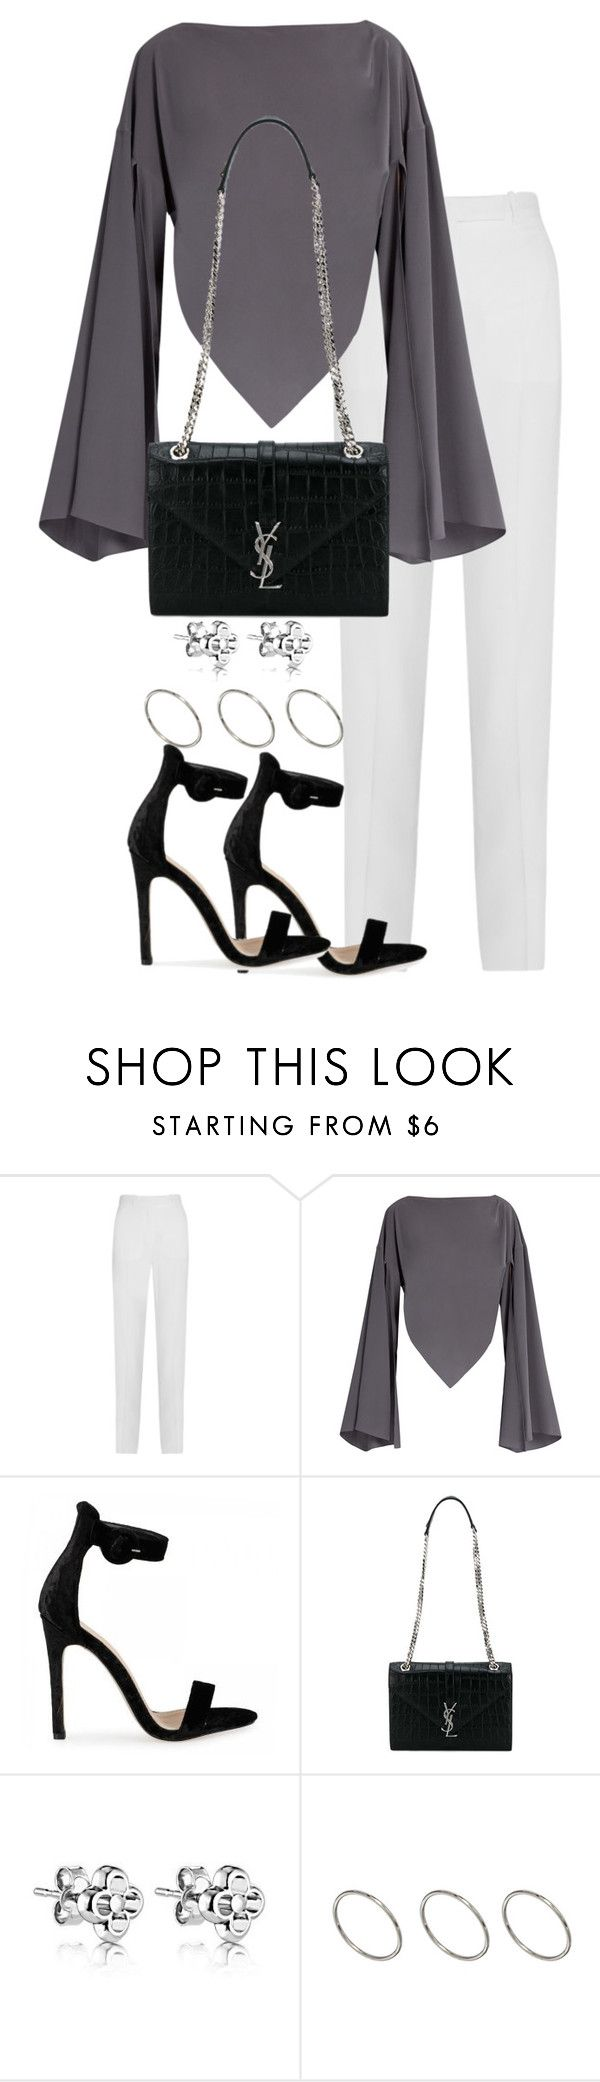 """""""Untitled #2954"""" by theeuropeancloset ❤ liked on Polyvore featuring Givenchy, Balenciaga, Yves Saint Laurent and ASOS"""